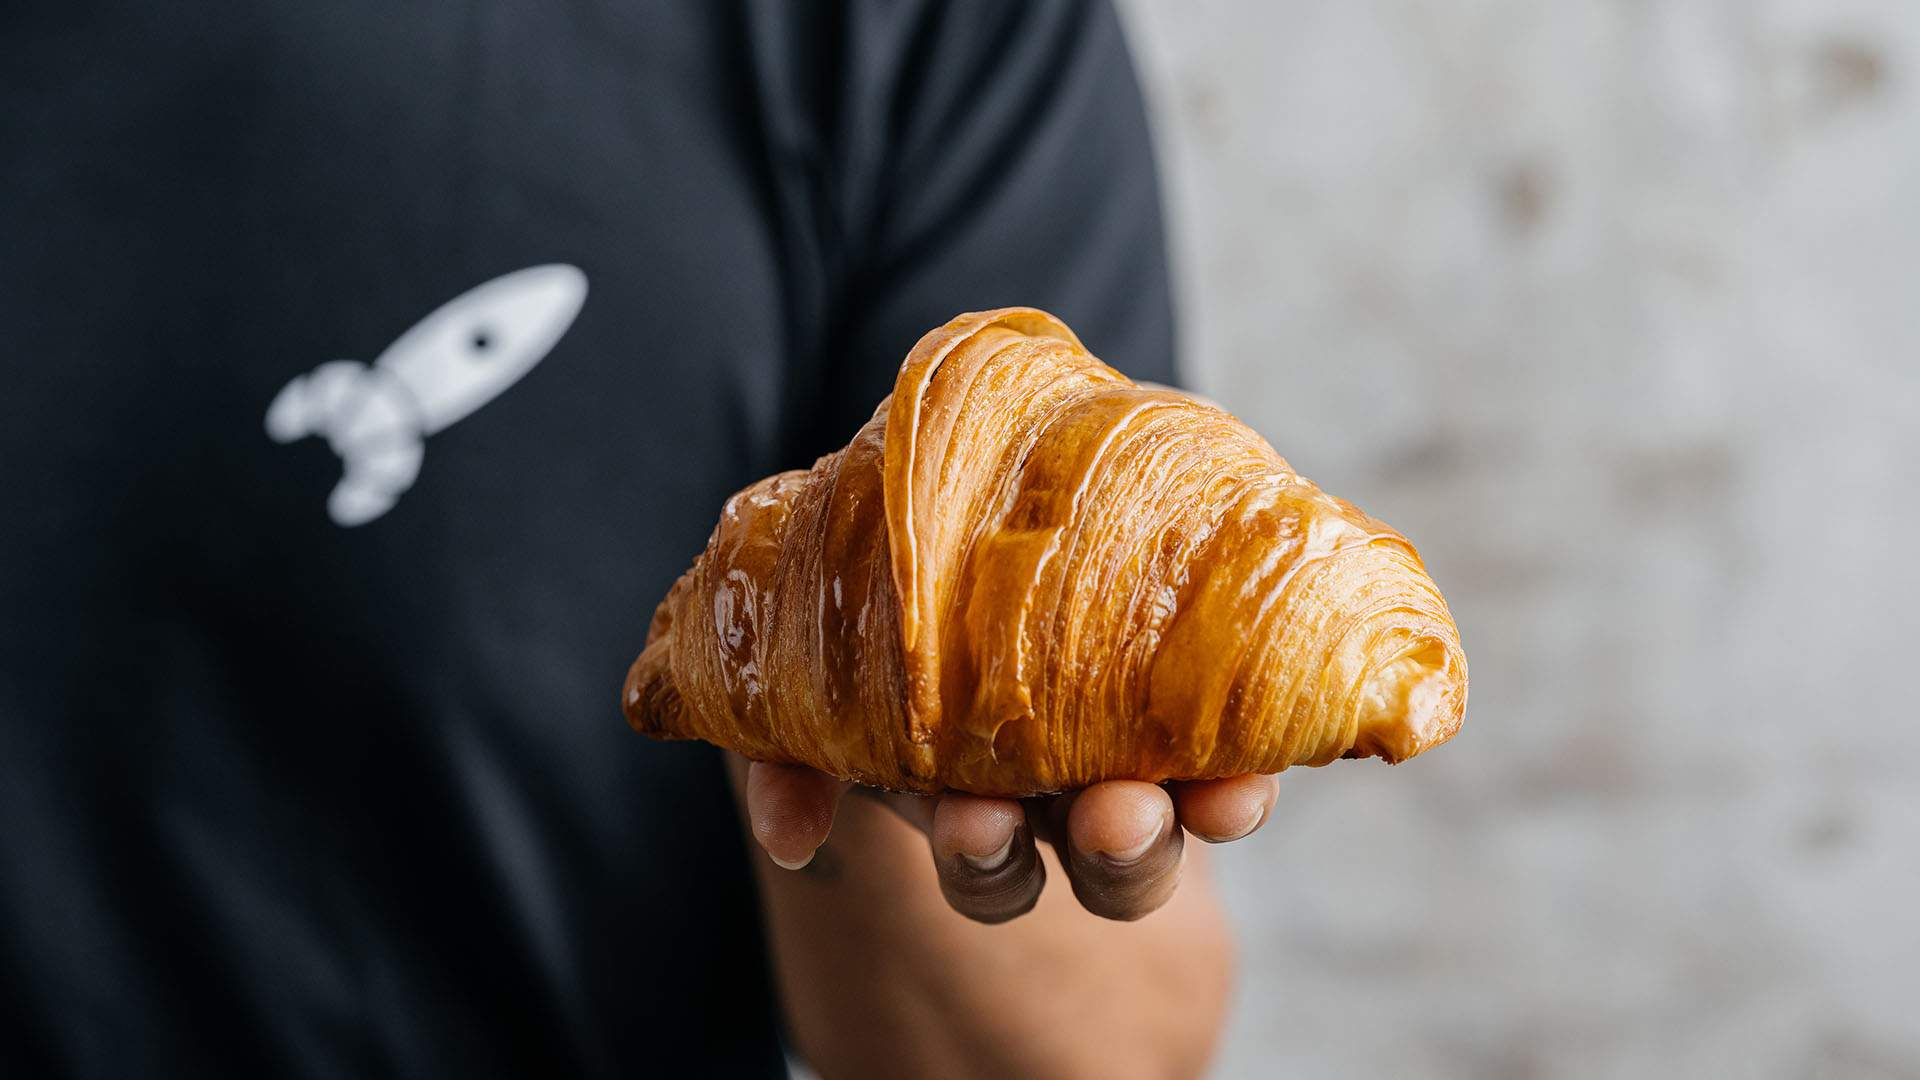 Melbourne's World-Famous Lune Croissanterie Is Opening Its Doors in Brisbane Next Month